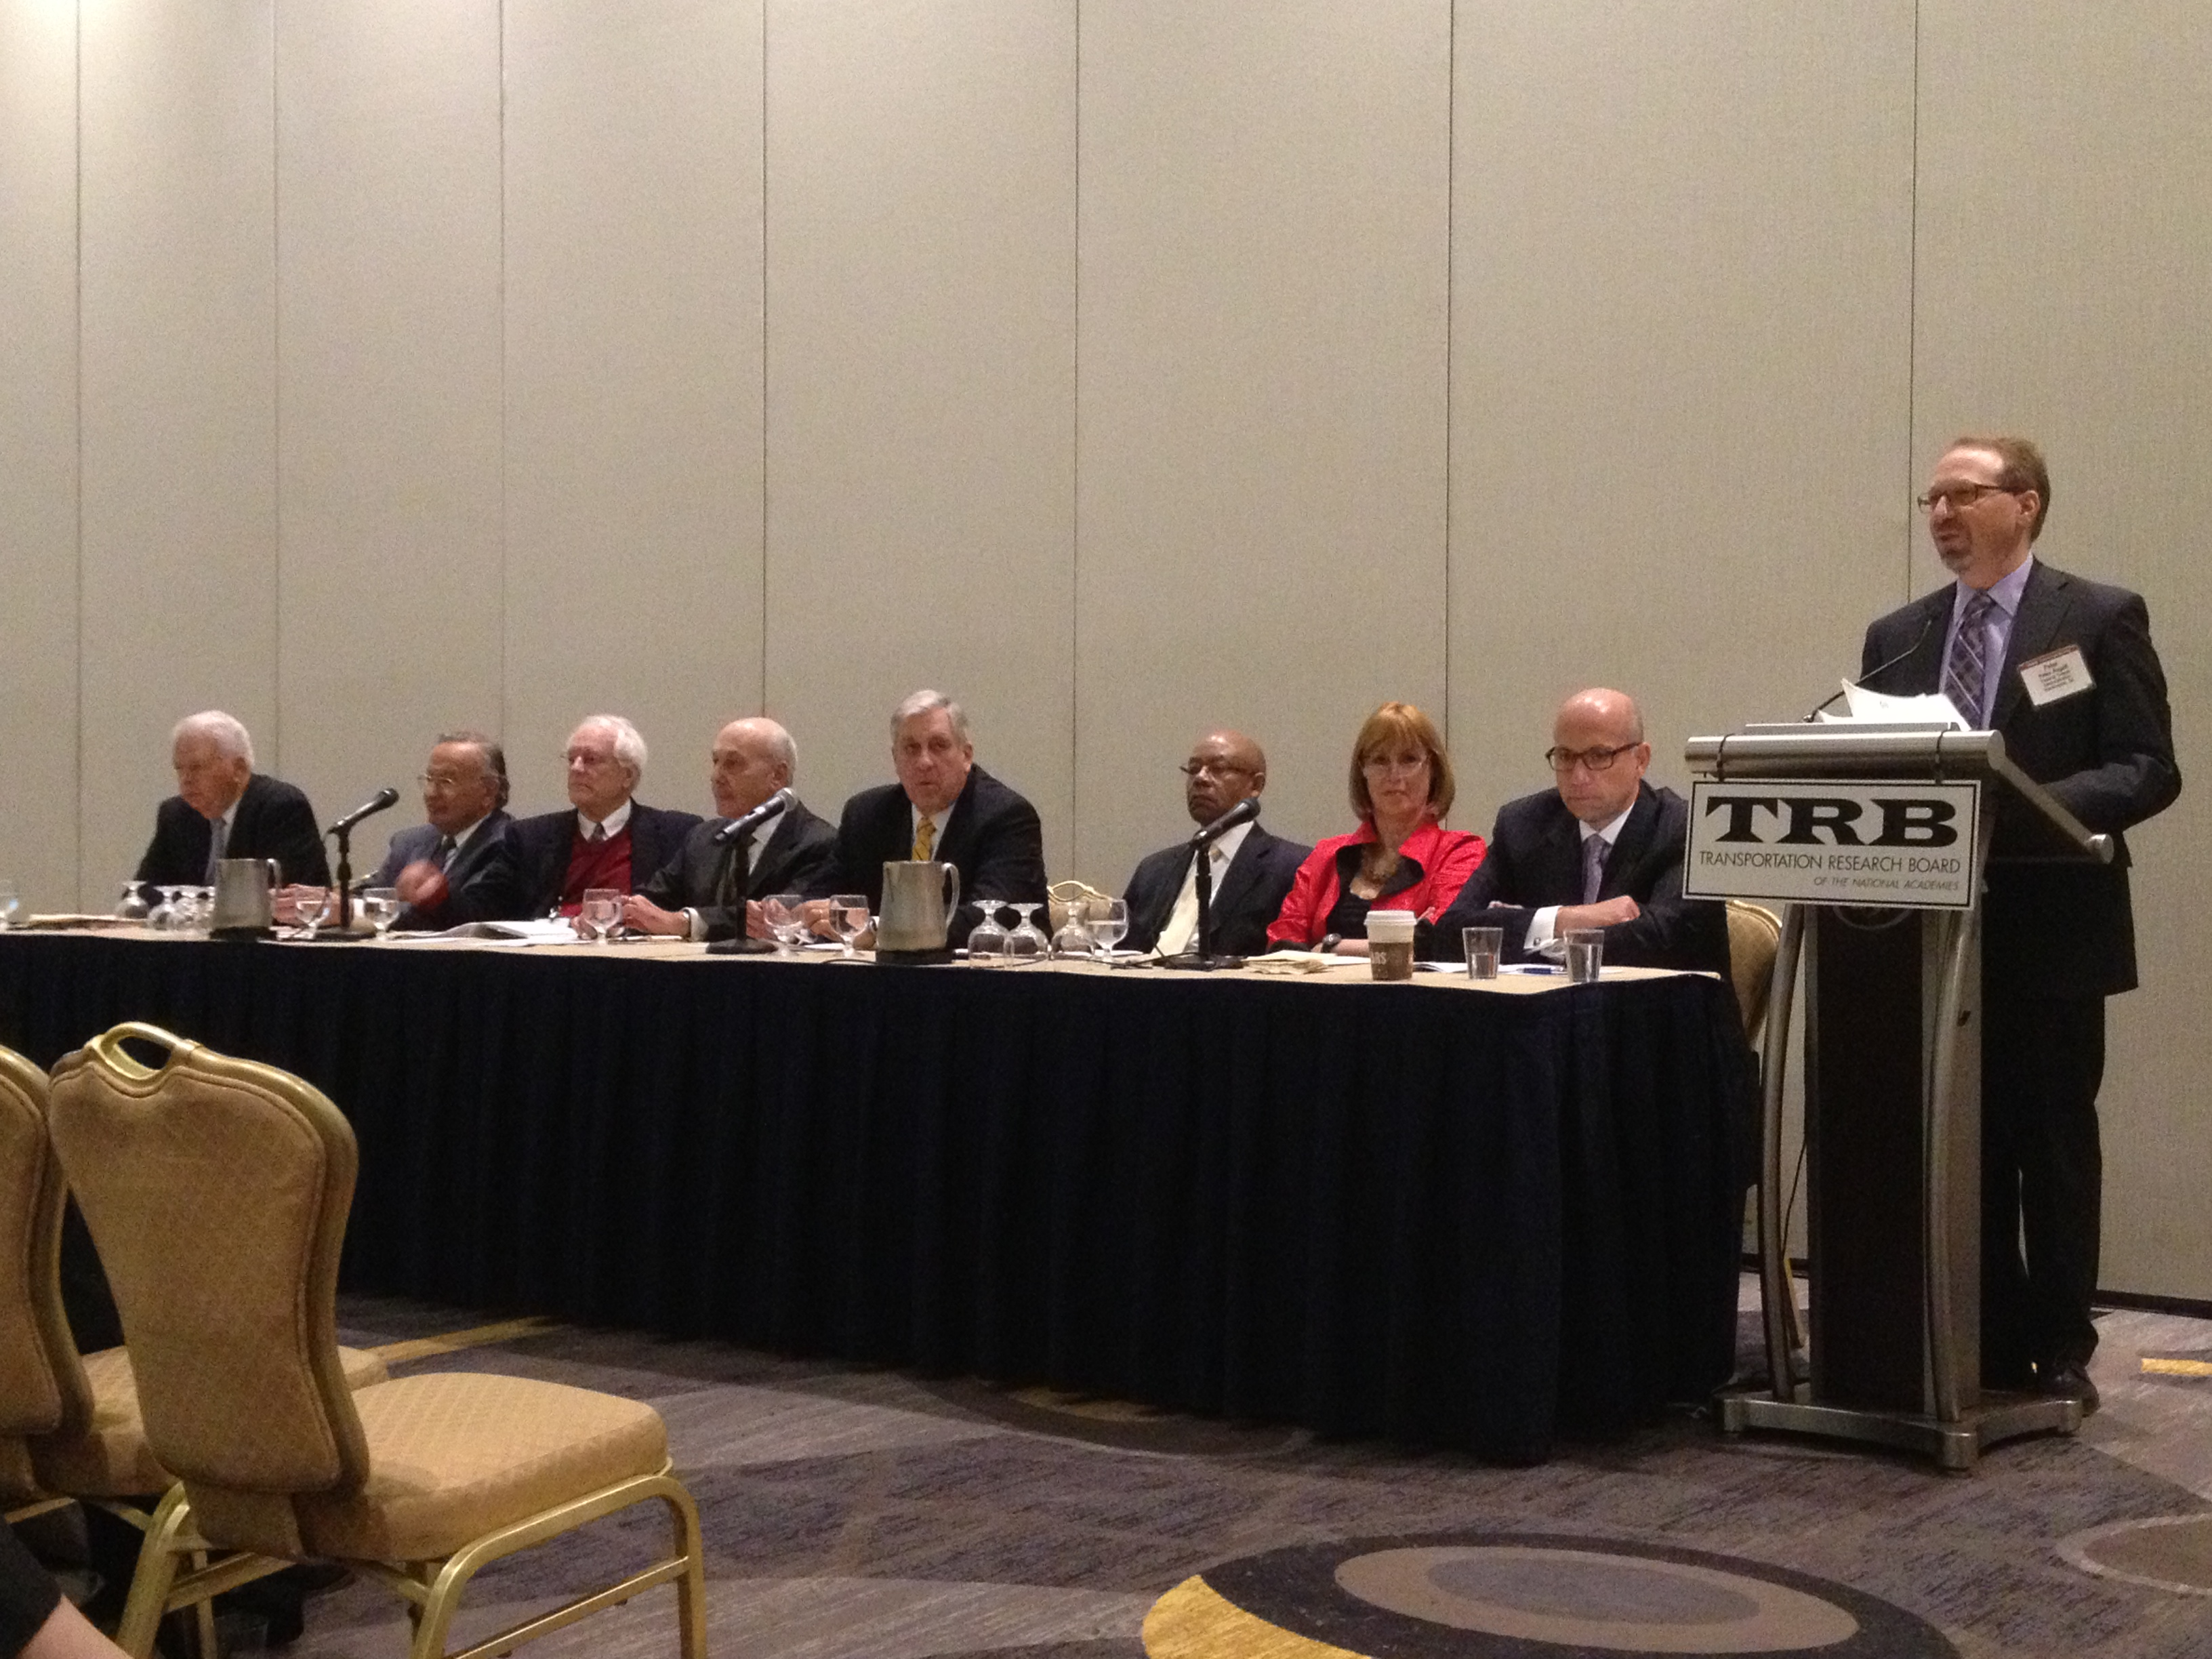 Former UMTA and FTA administrators, from left: Frank Herringer, Bob Patricelli, Ted Lutz, Al DelliBovi, Brian Clymer, Gordon Linton, Jenna Dorn, Jim Simpson, and current administrator Peter Rogoff at the podium. Photo: Tanya Snyder